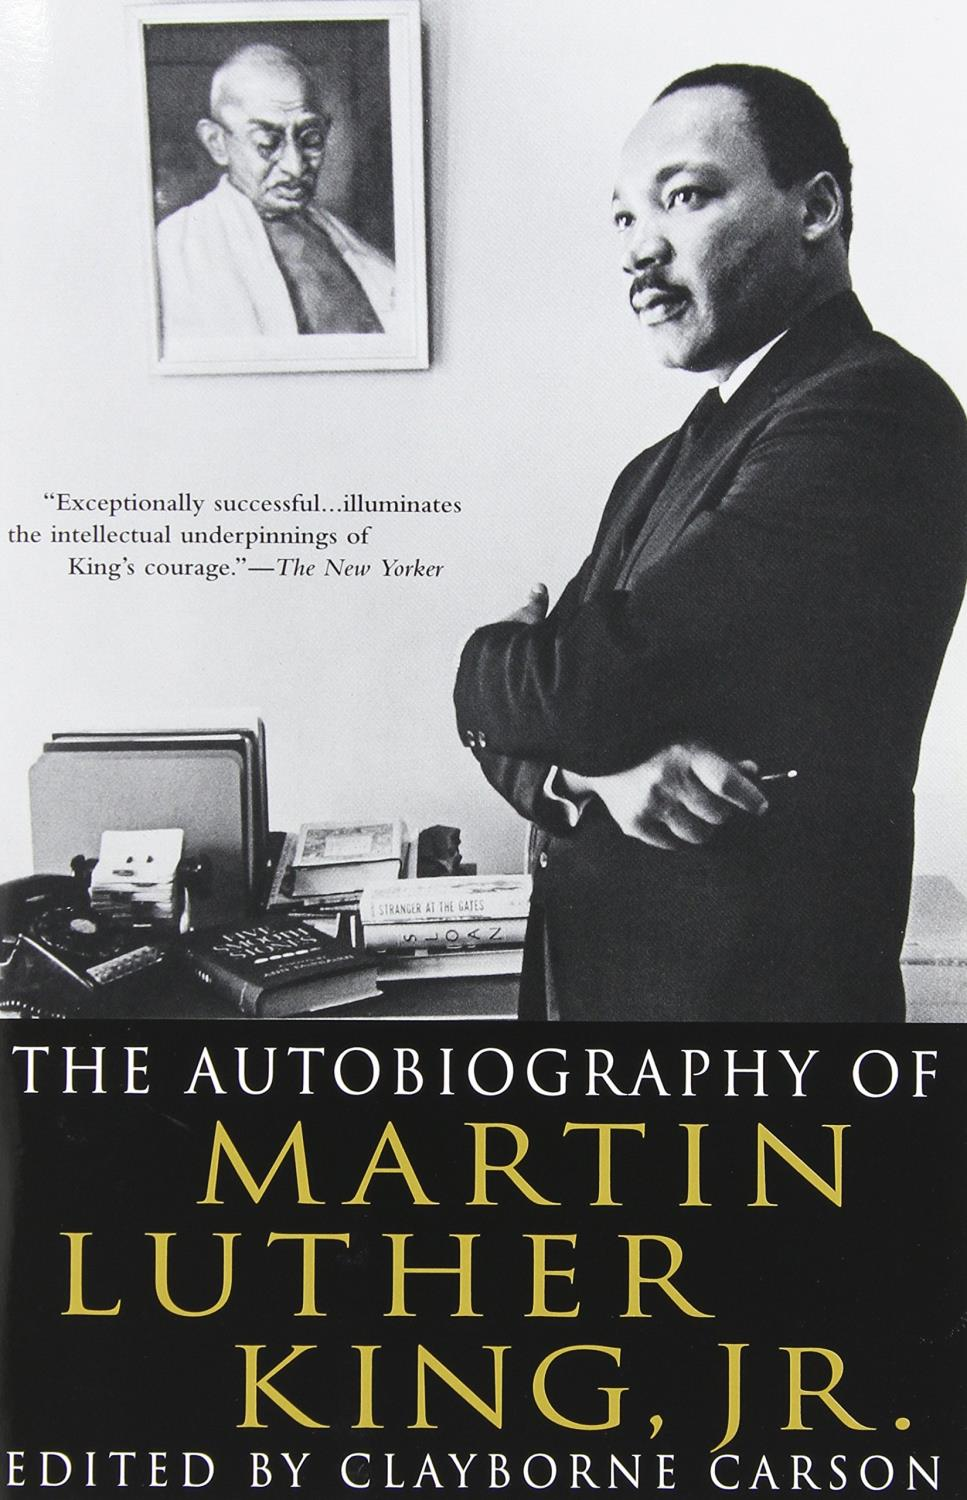 THE AUTOBIOGRAPHY OF MARTIN LUTHER KING. JR.